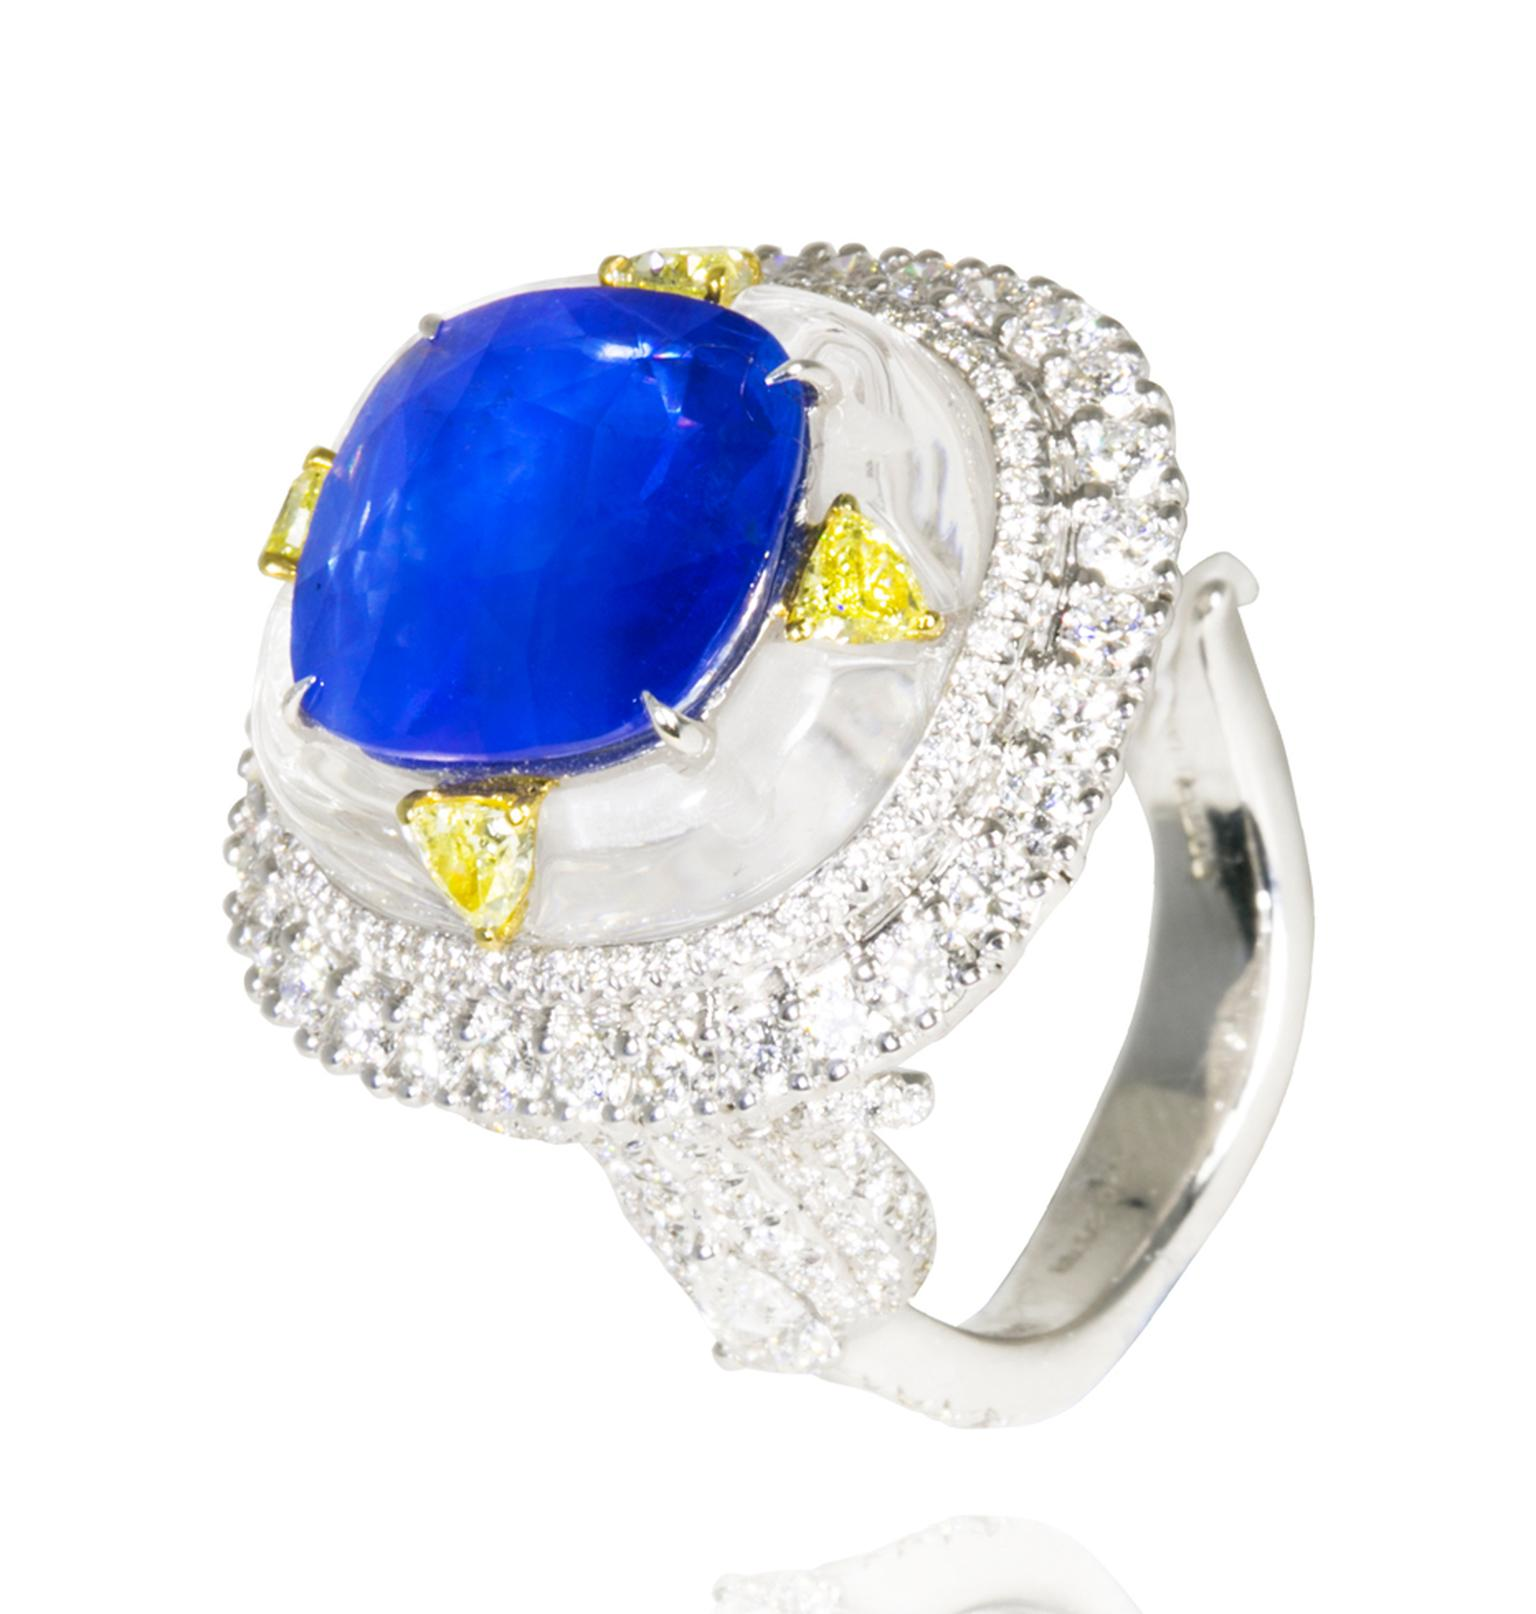 For a mere £94,800, you can own the Amrapali diamond ring featuring a centre sapphire set into rock crystal and surrounded with four yellow diamonds which are further outlined by a plethora of white diamonds.